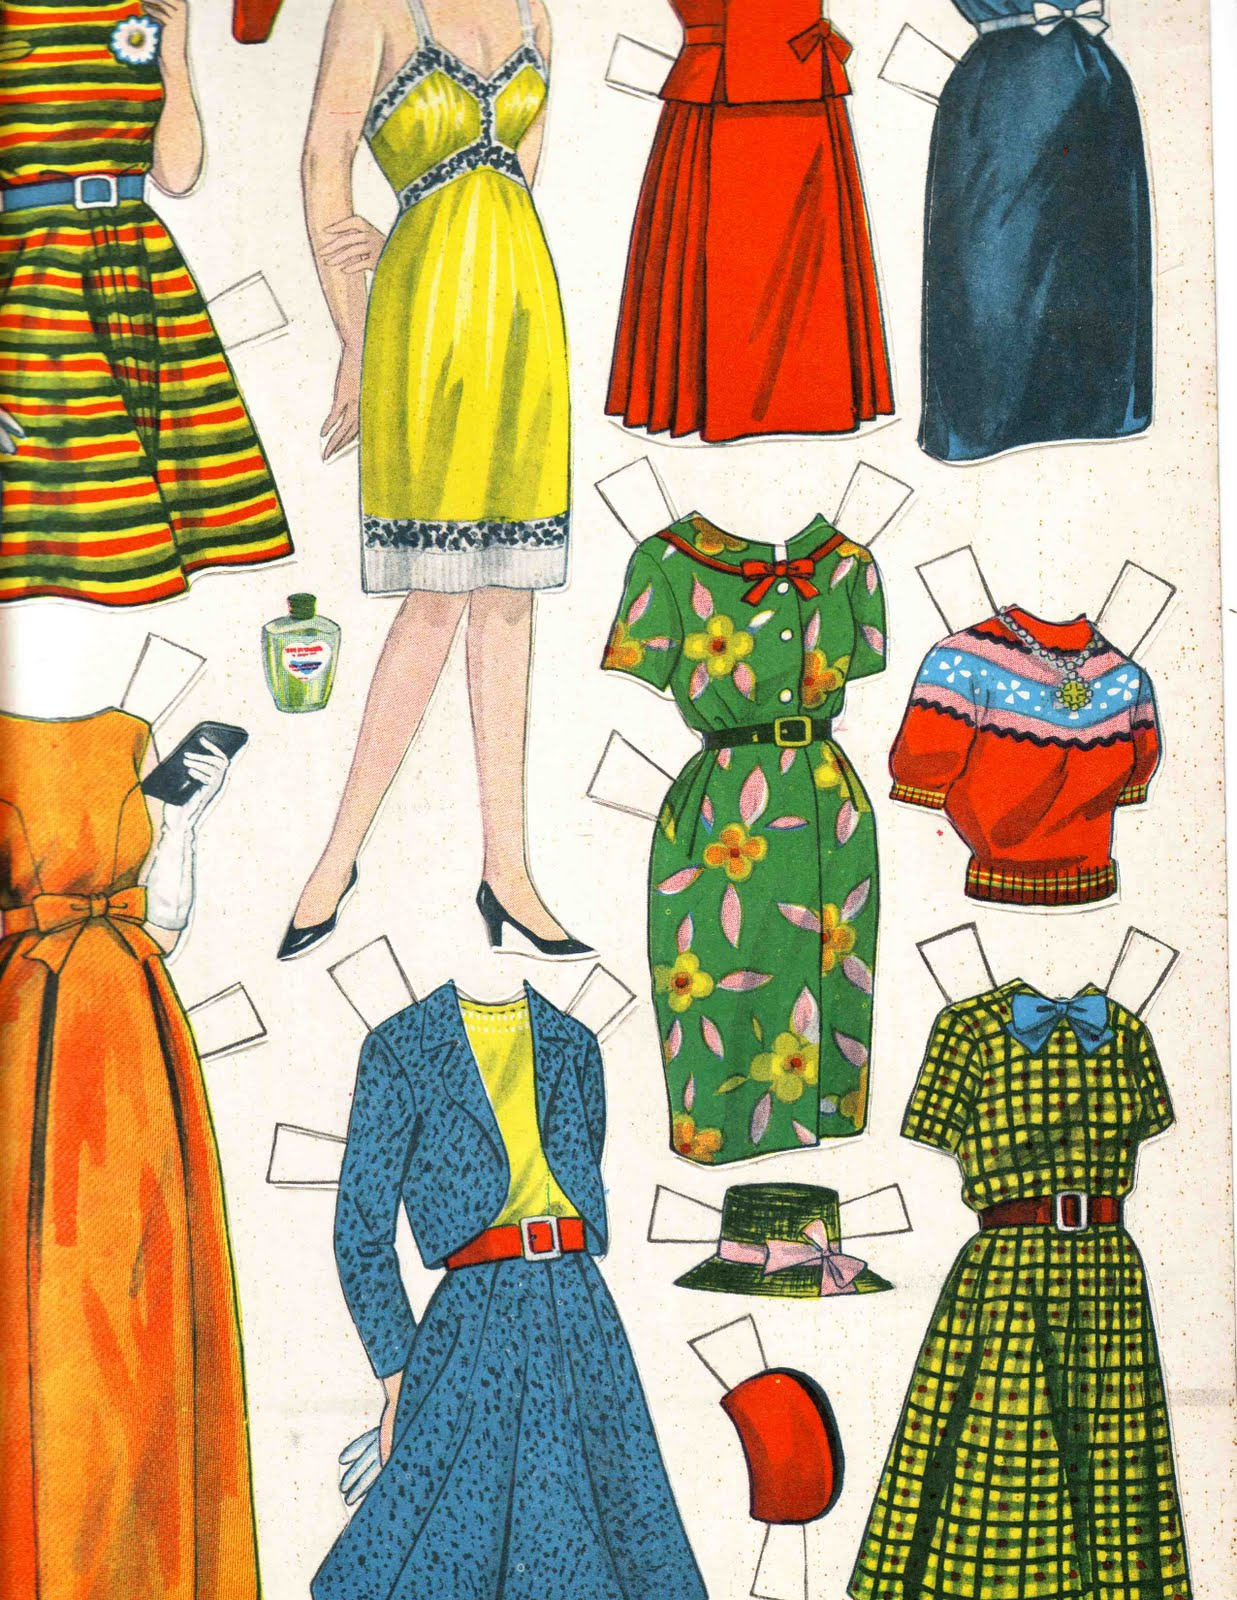 The Washerwoman Vintage Cut Out Dolls